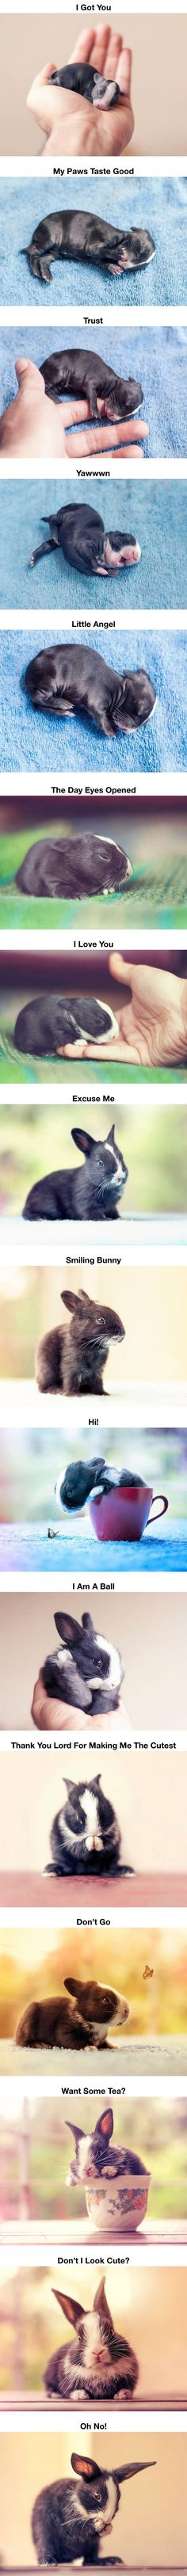 DailyFailCenter | Funny Pictures Updated Daily